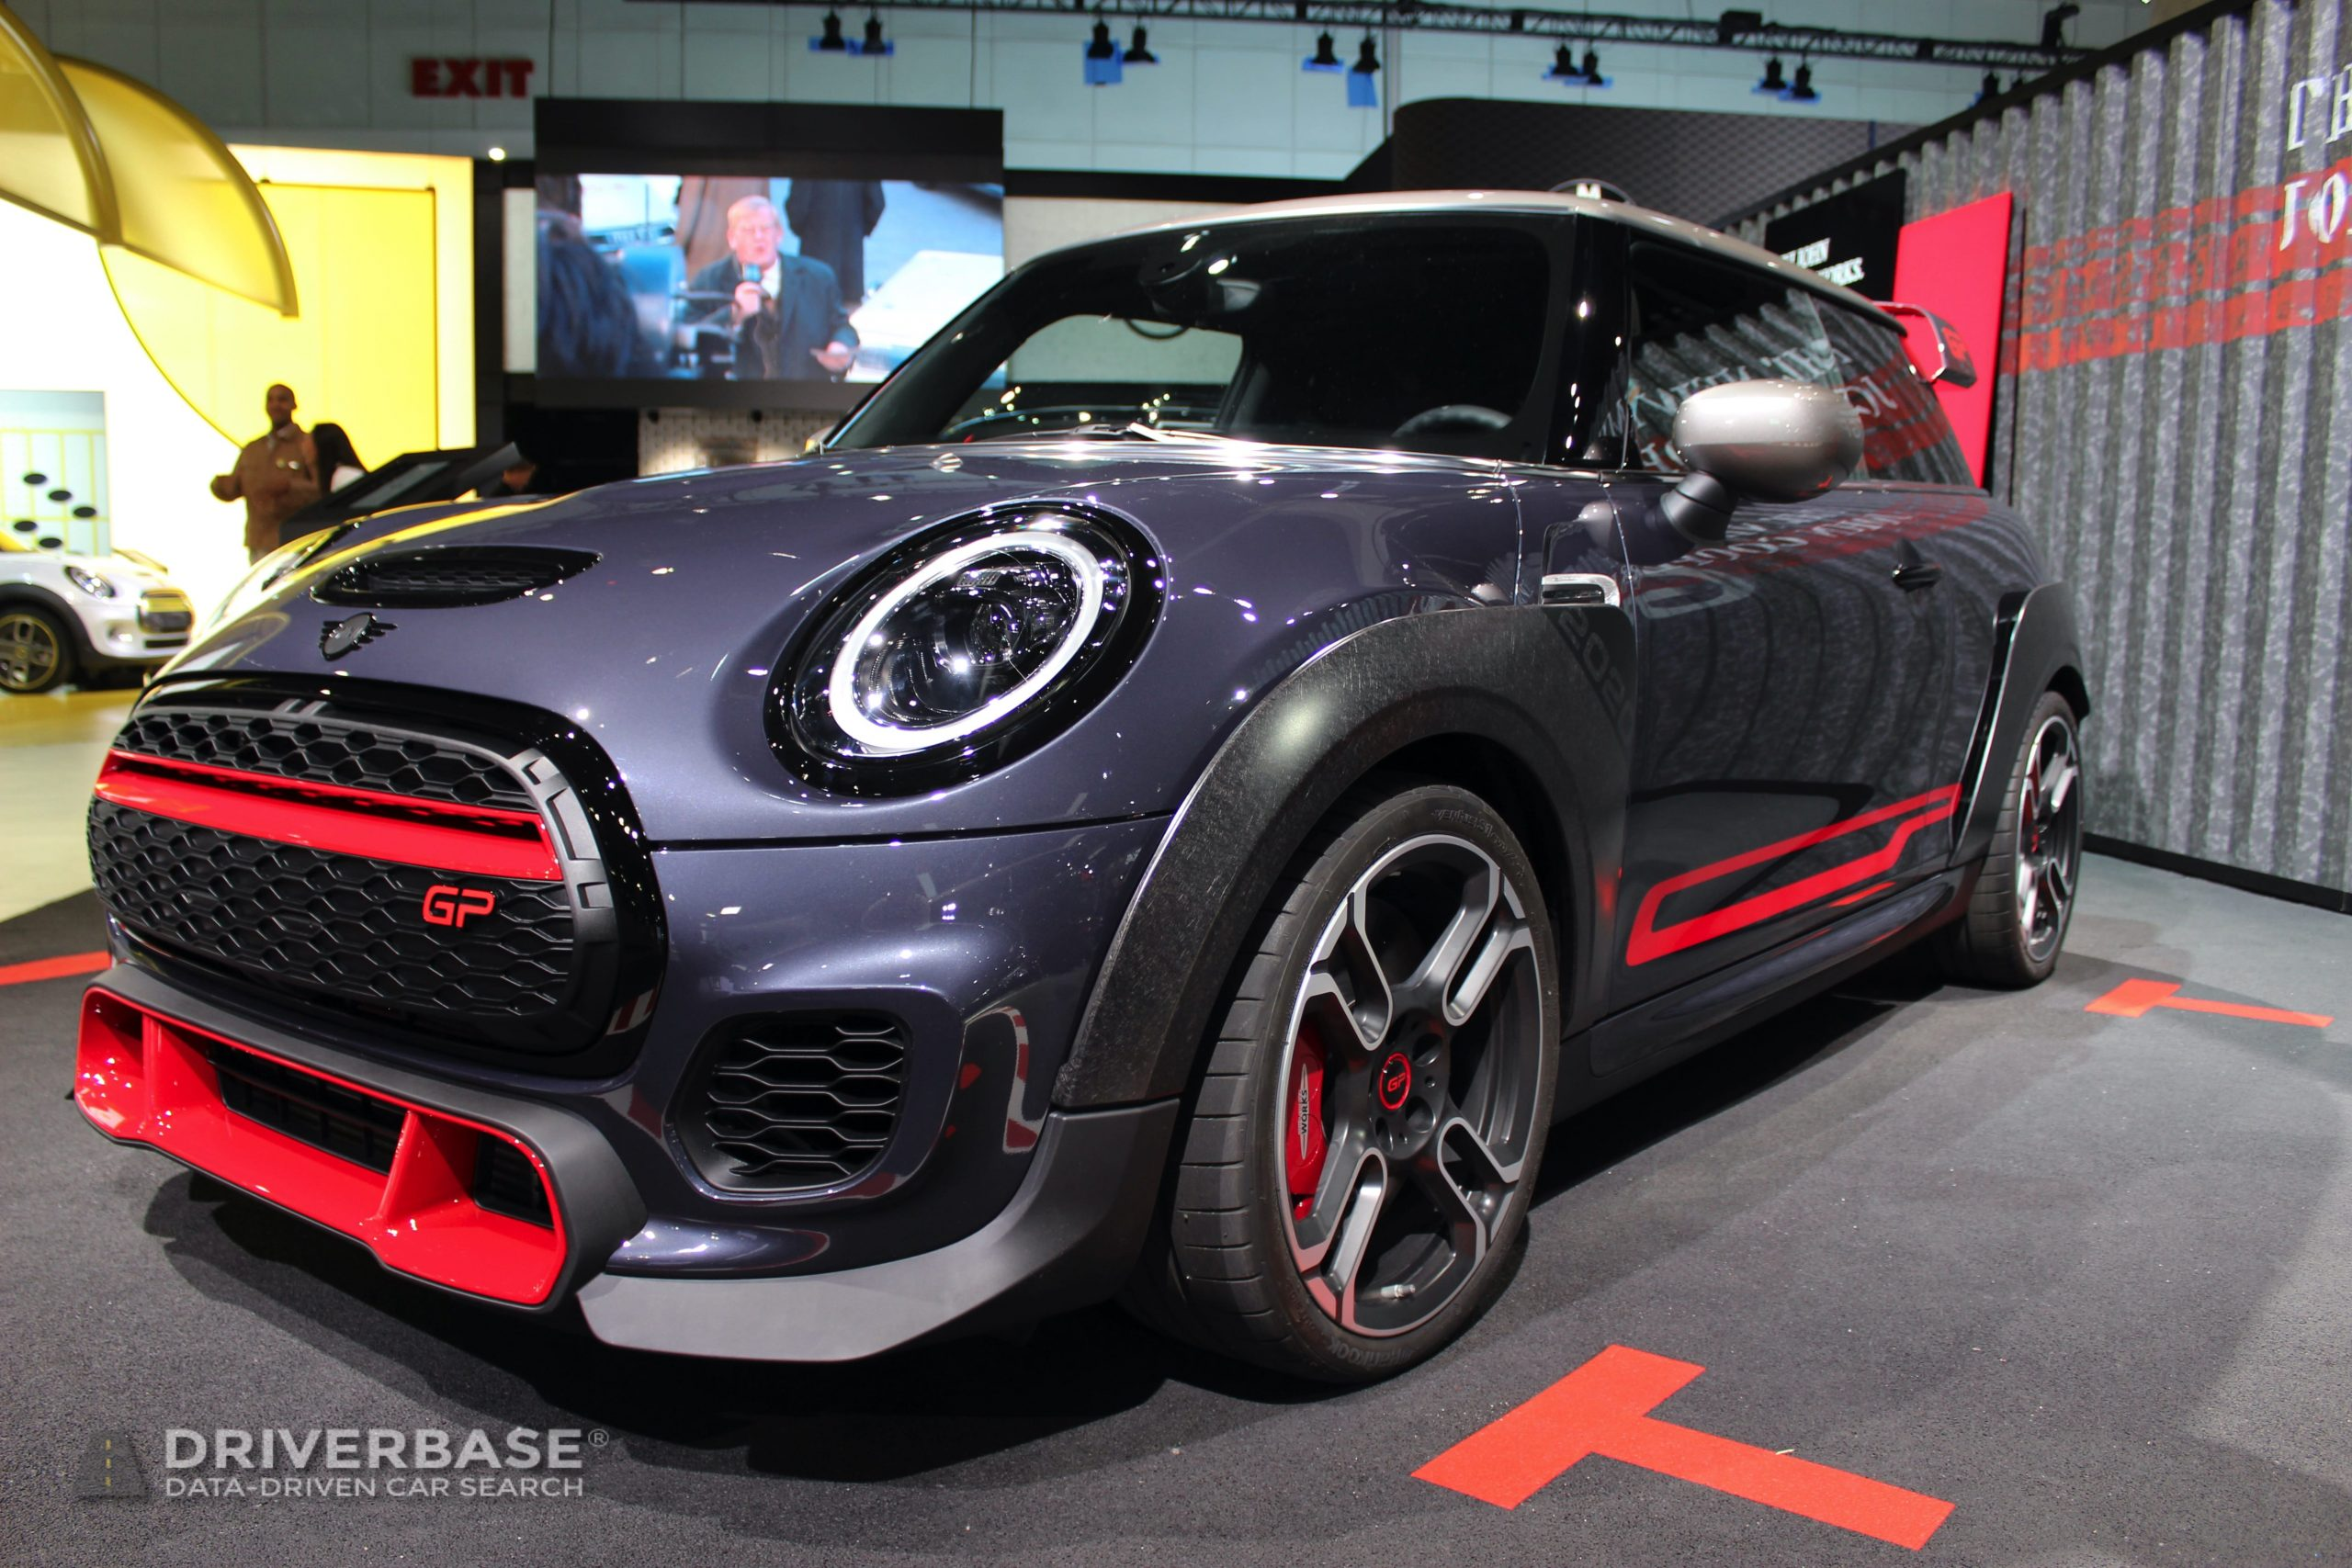 2020 MINI John Cooper Works GP at the 2019 Los Angeles Auto Show